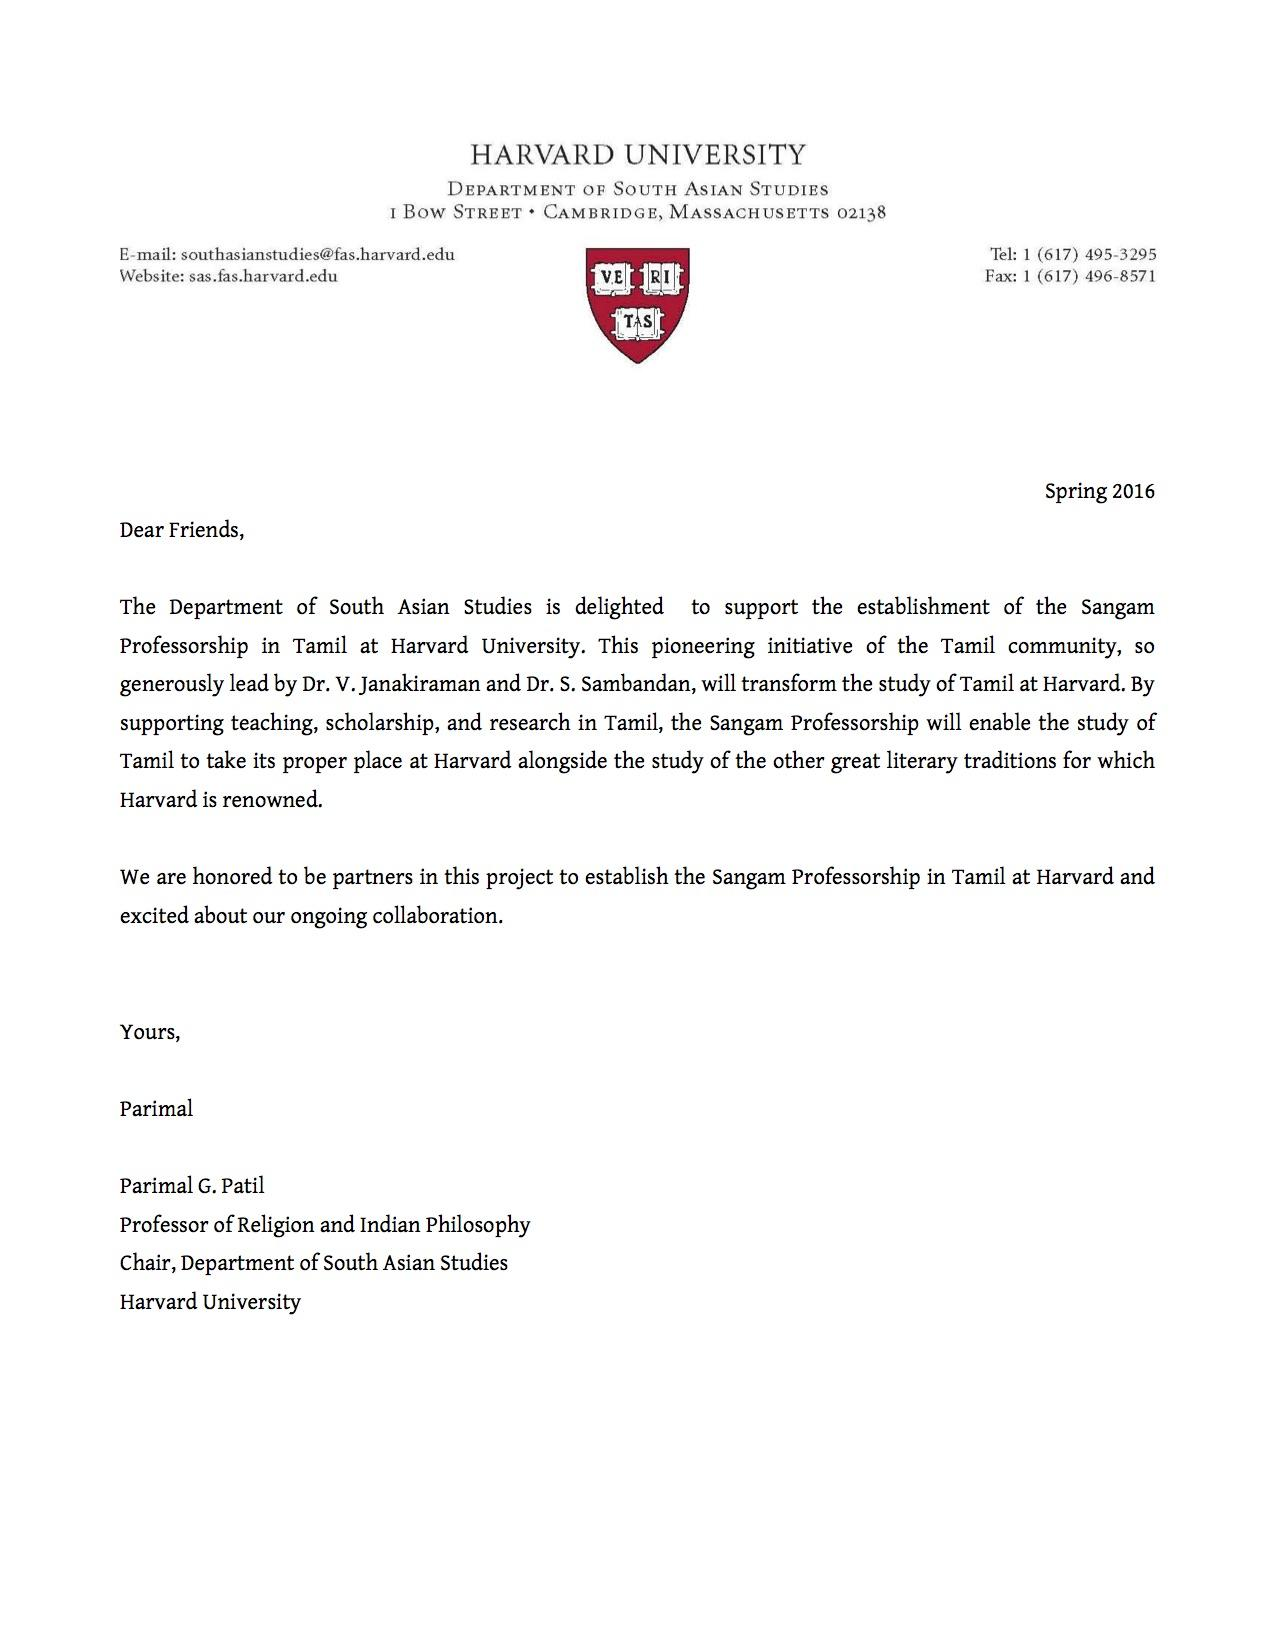 Letter from Parimal G. Patil, Chair, Department of South Asian Studies